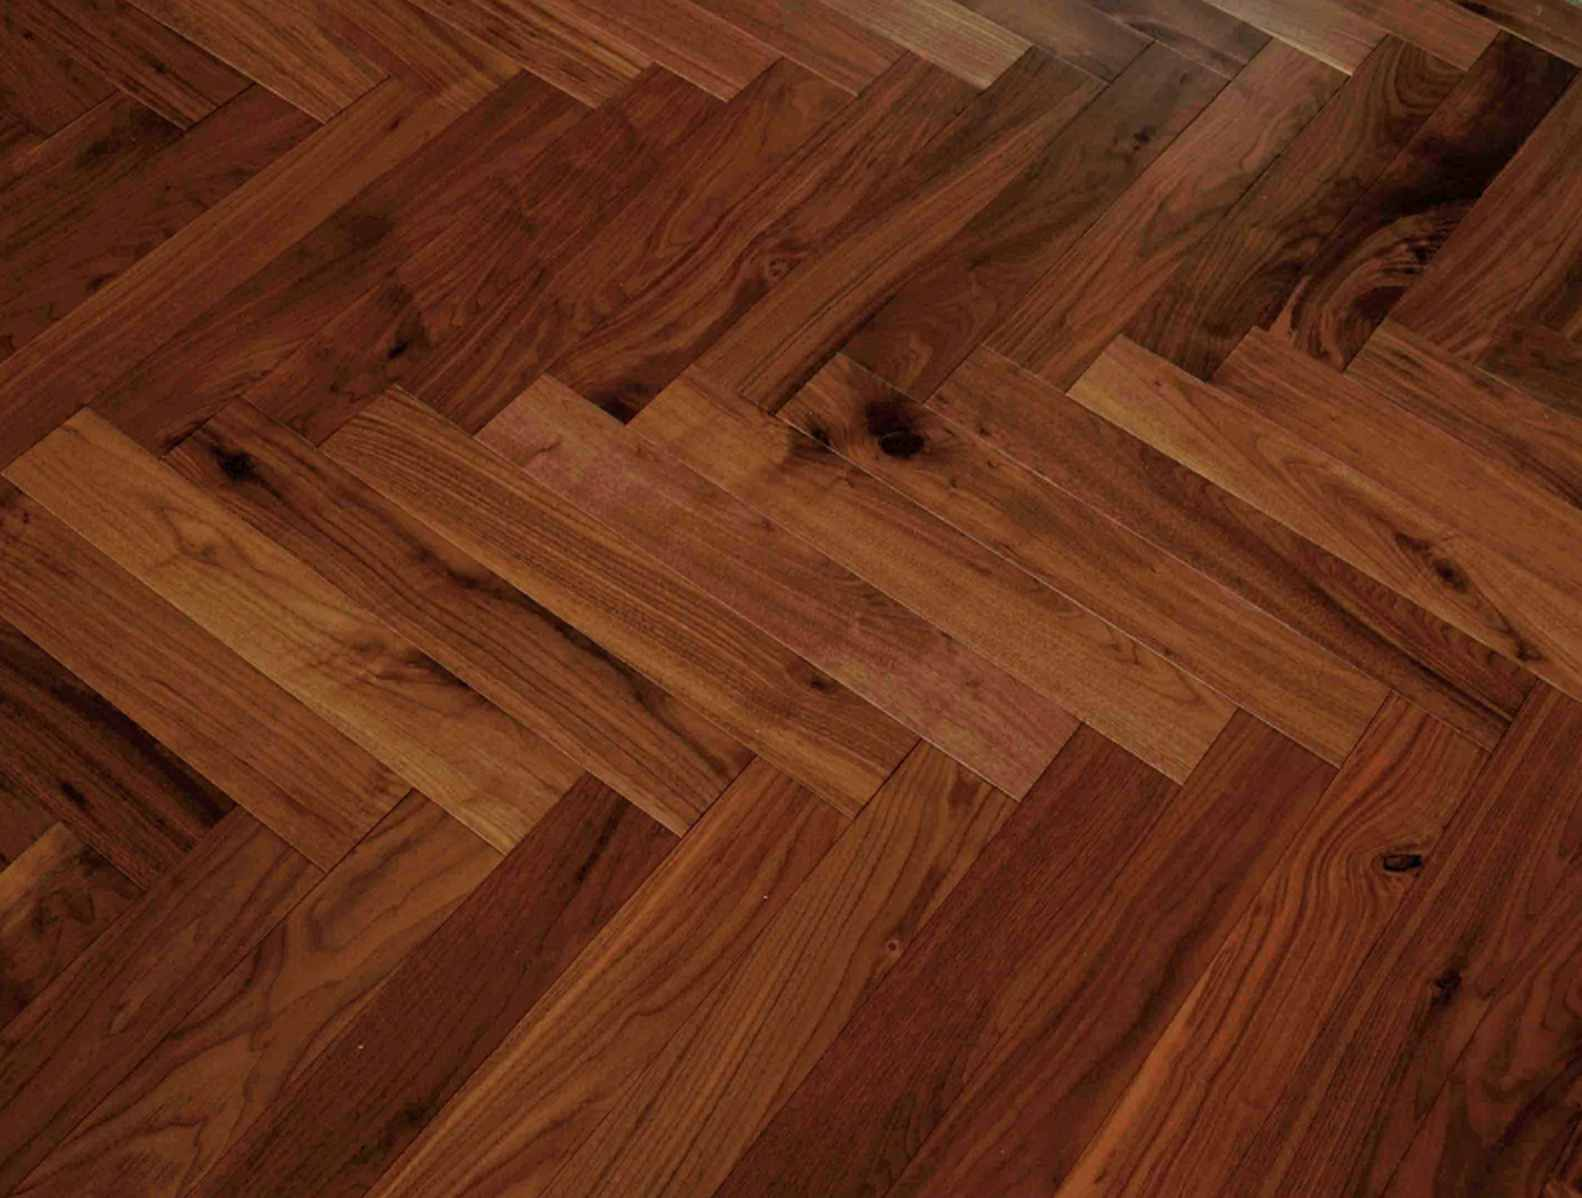 Parqet Hardwood Floor Vs Laminate Which One Is The Winner